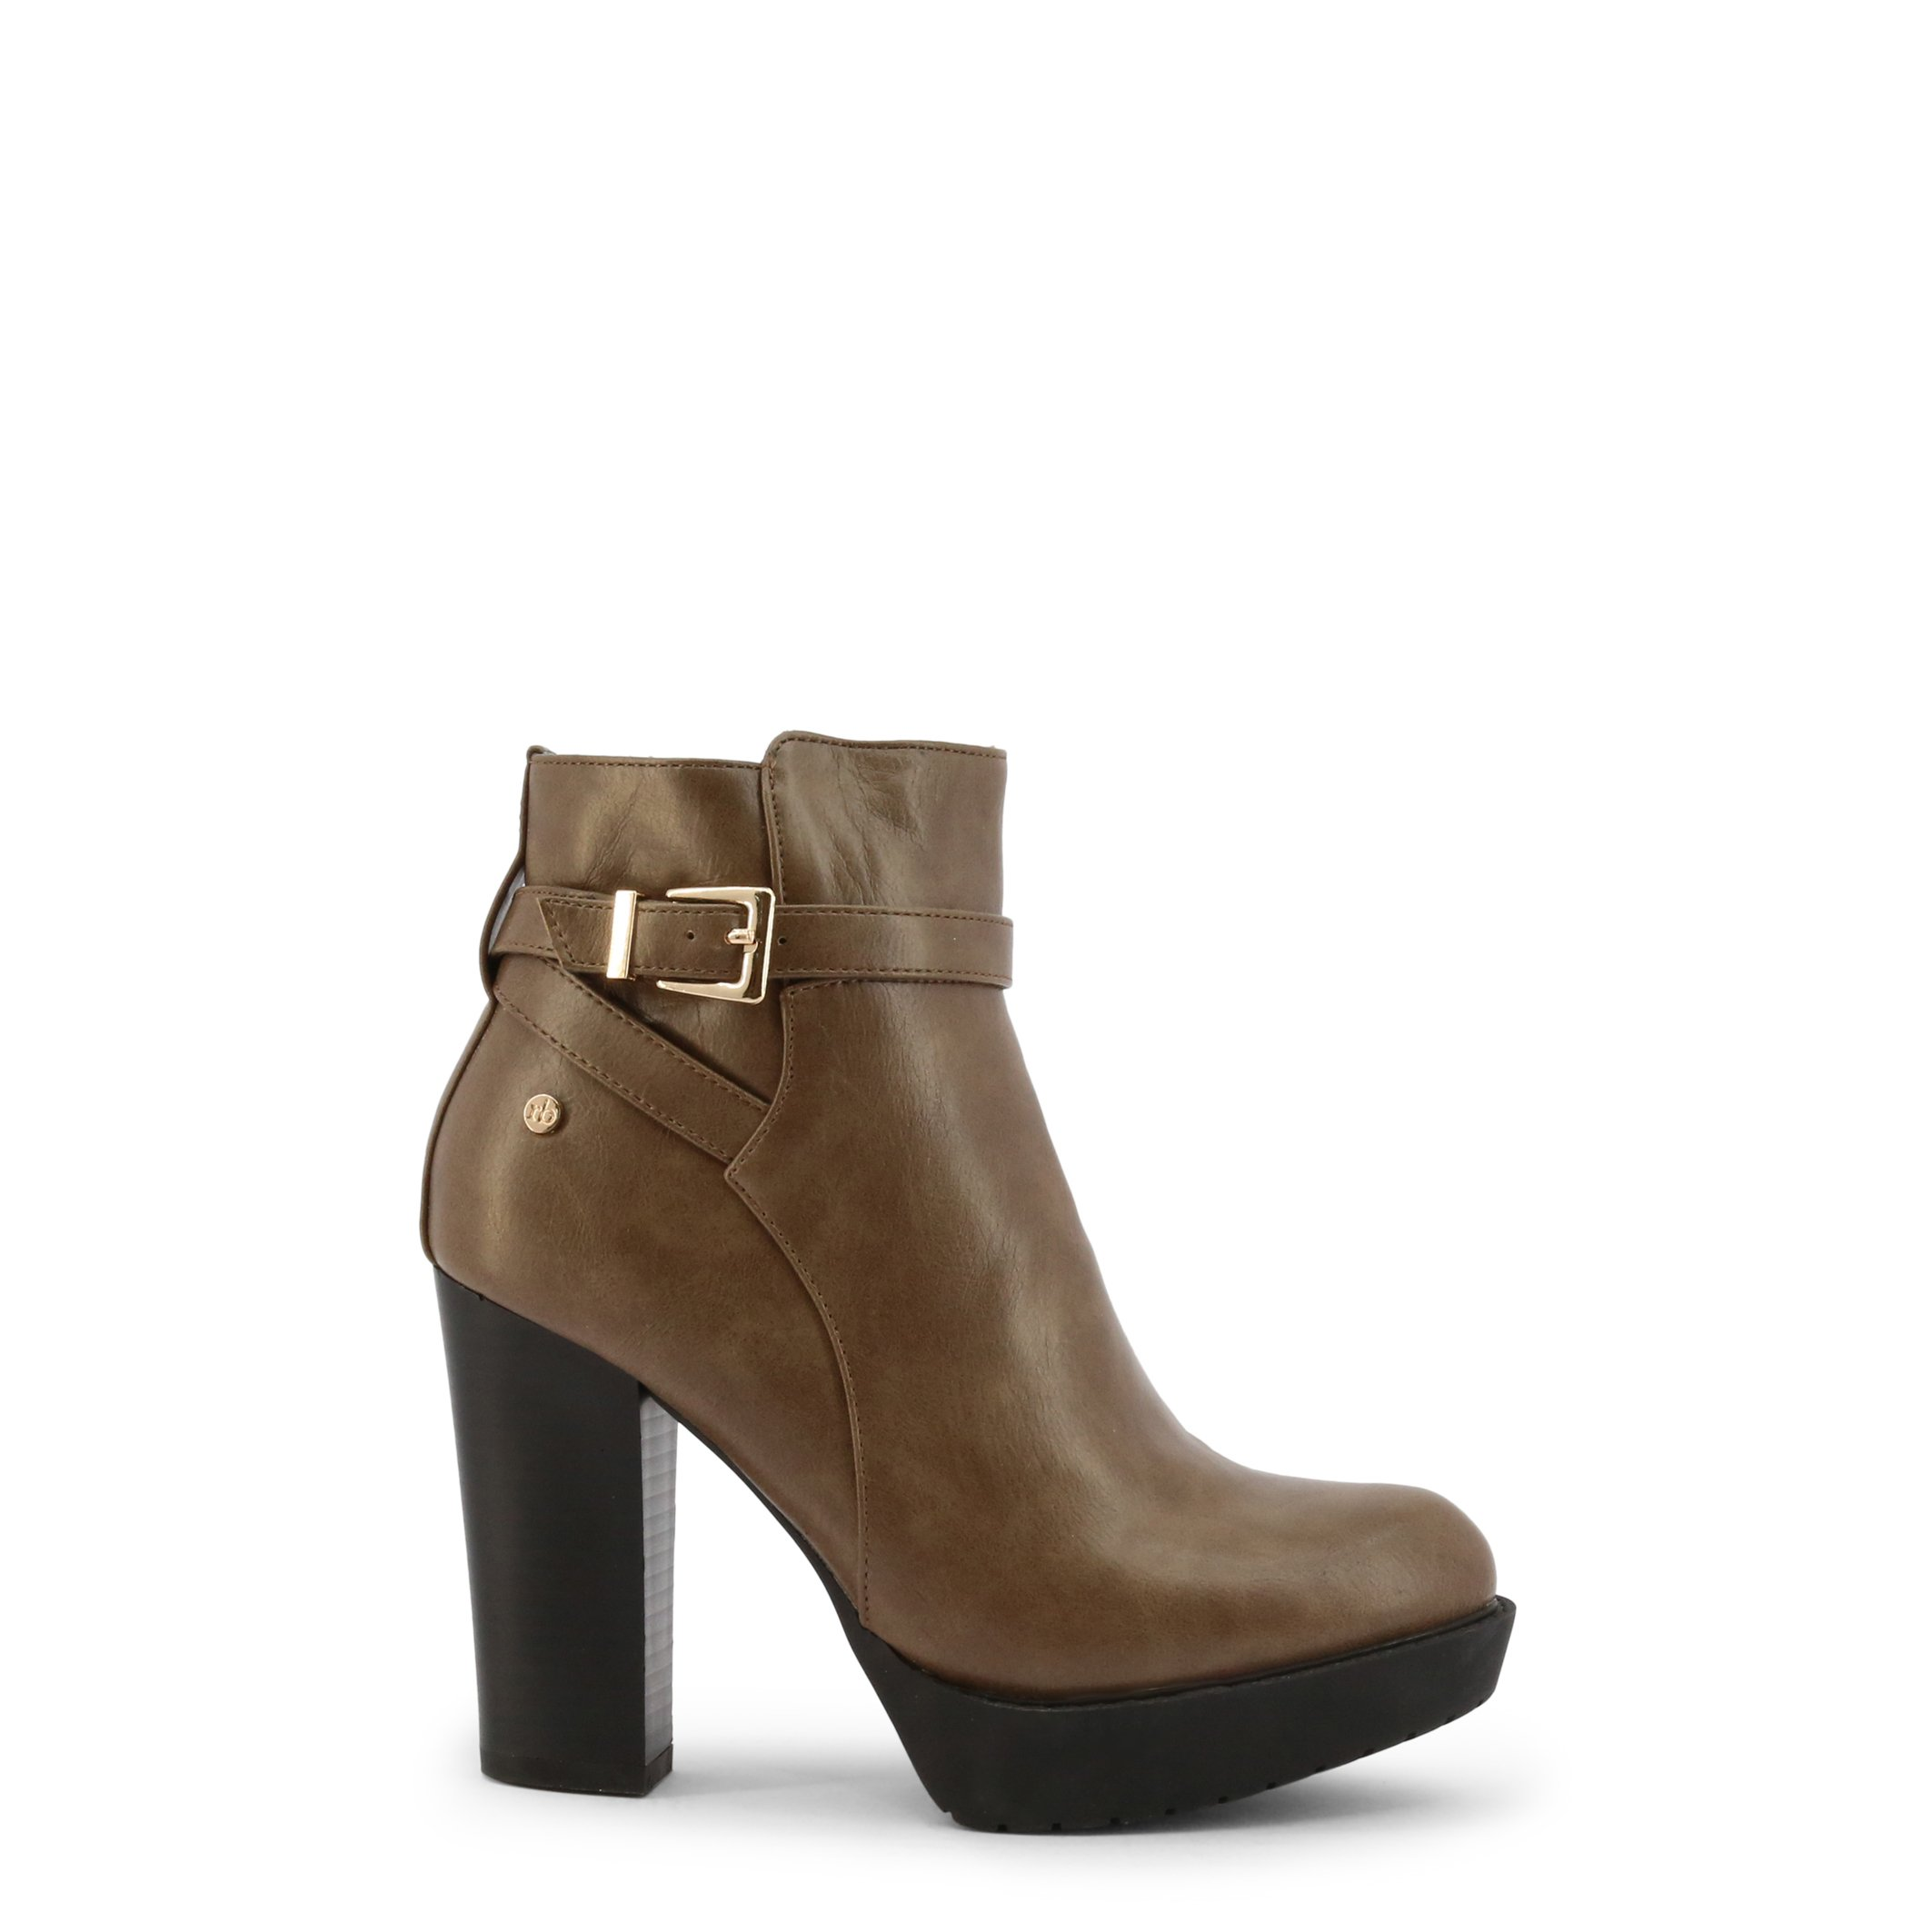 Roccobarocco Women's Ankle Boot Various Colours RBSC1JU02 - brown EU 35